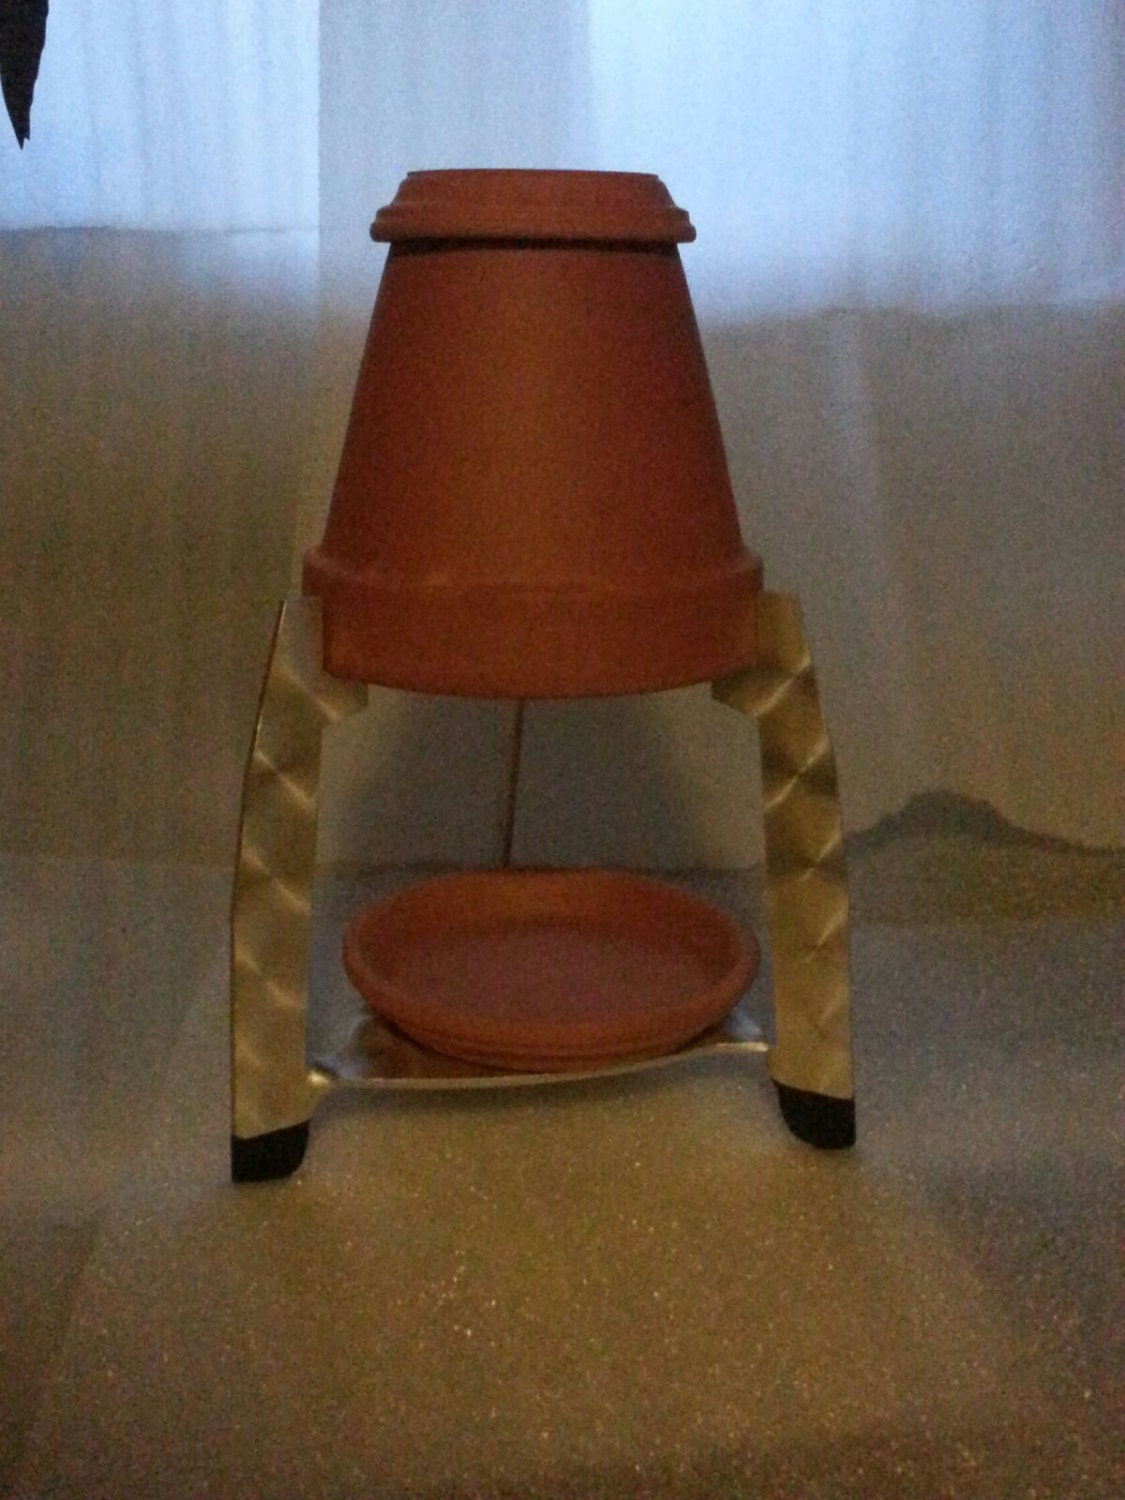 6 inch Flower Pot Heater Ready to place one or more candles